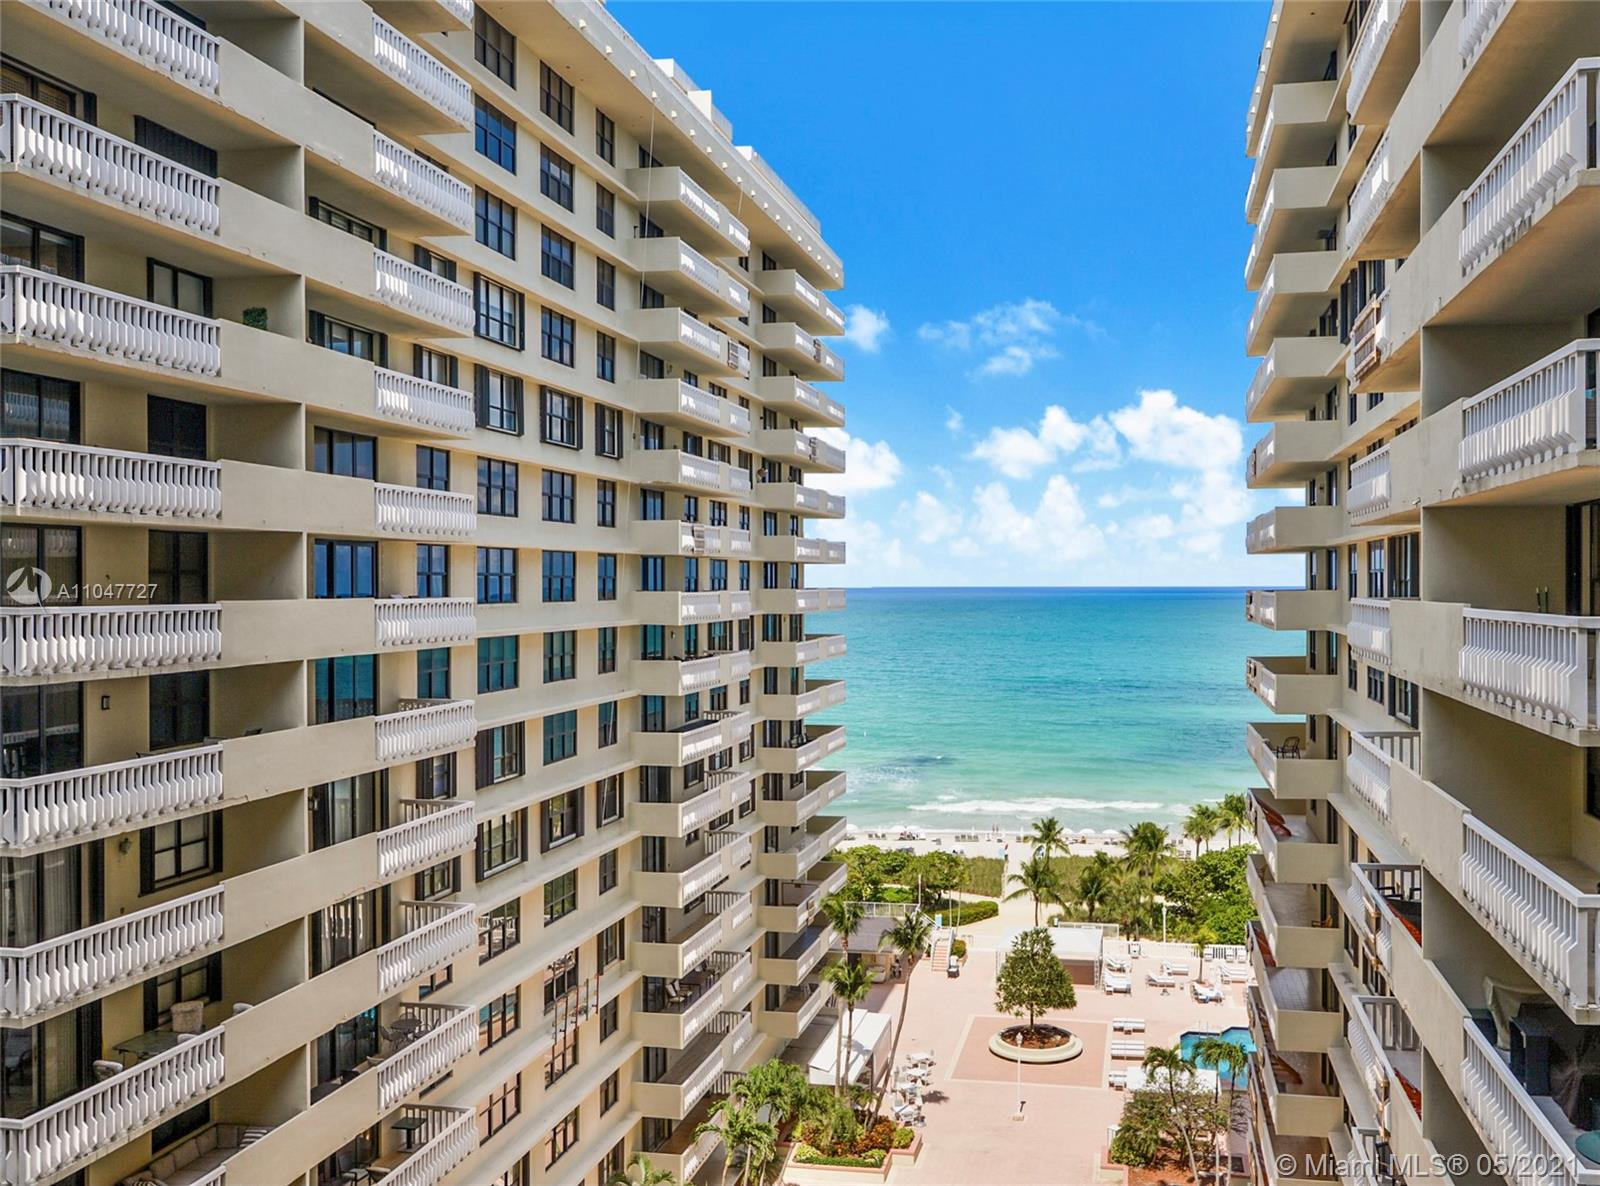 Photo of 9801 Collins Ave #14P, Bal Harbour, Florida, 33154 - Balmoral Beach at Bal Harbour Fl